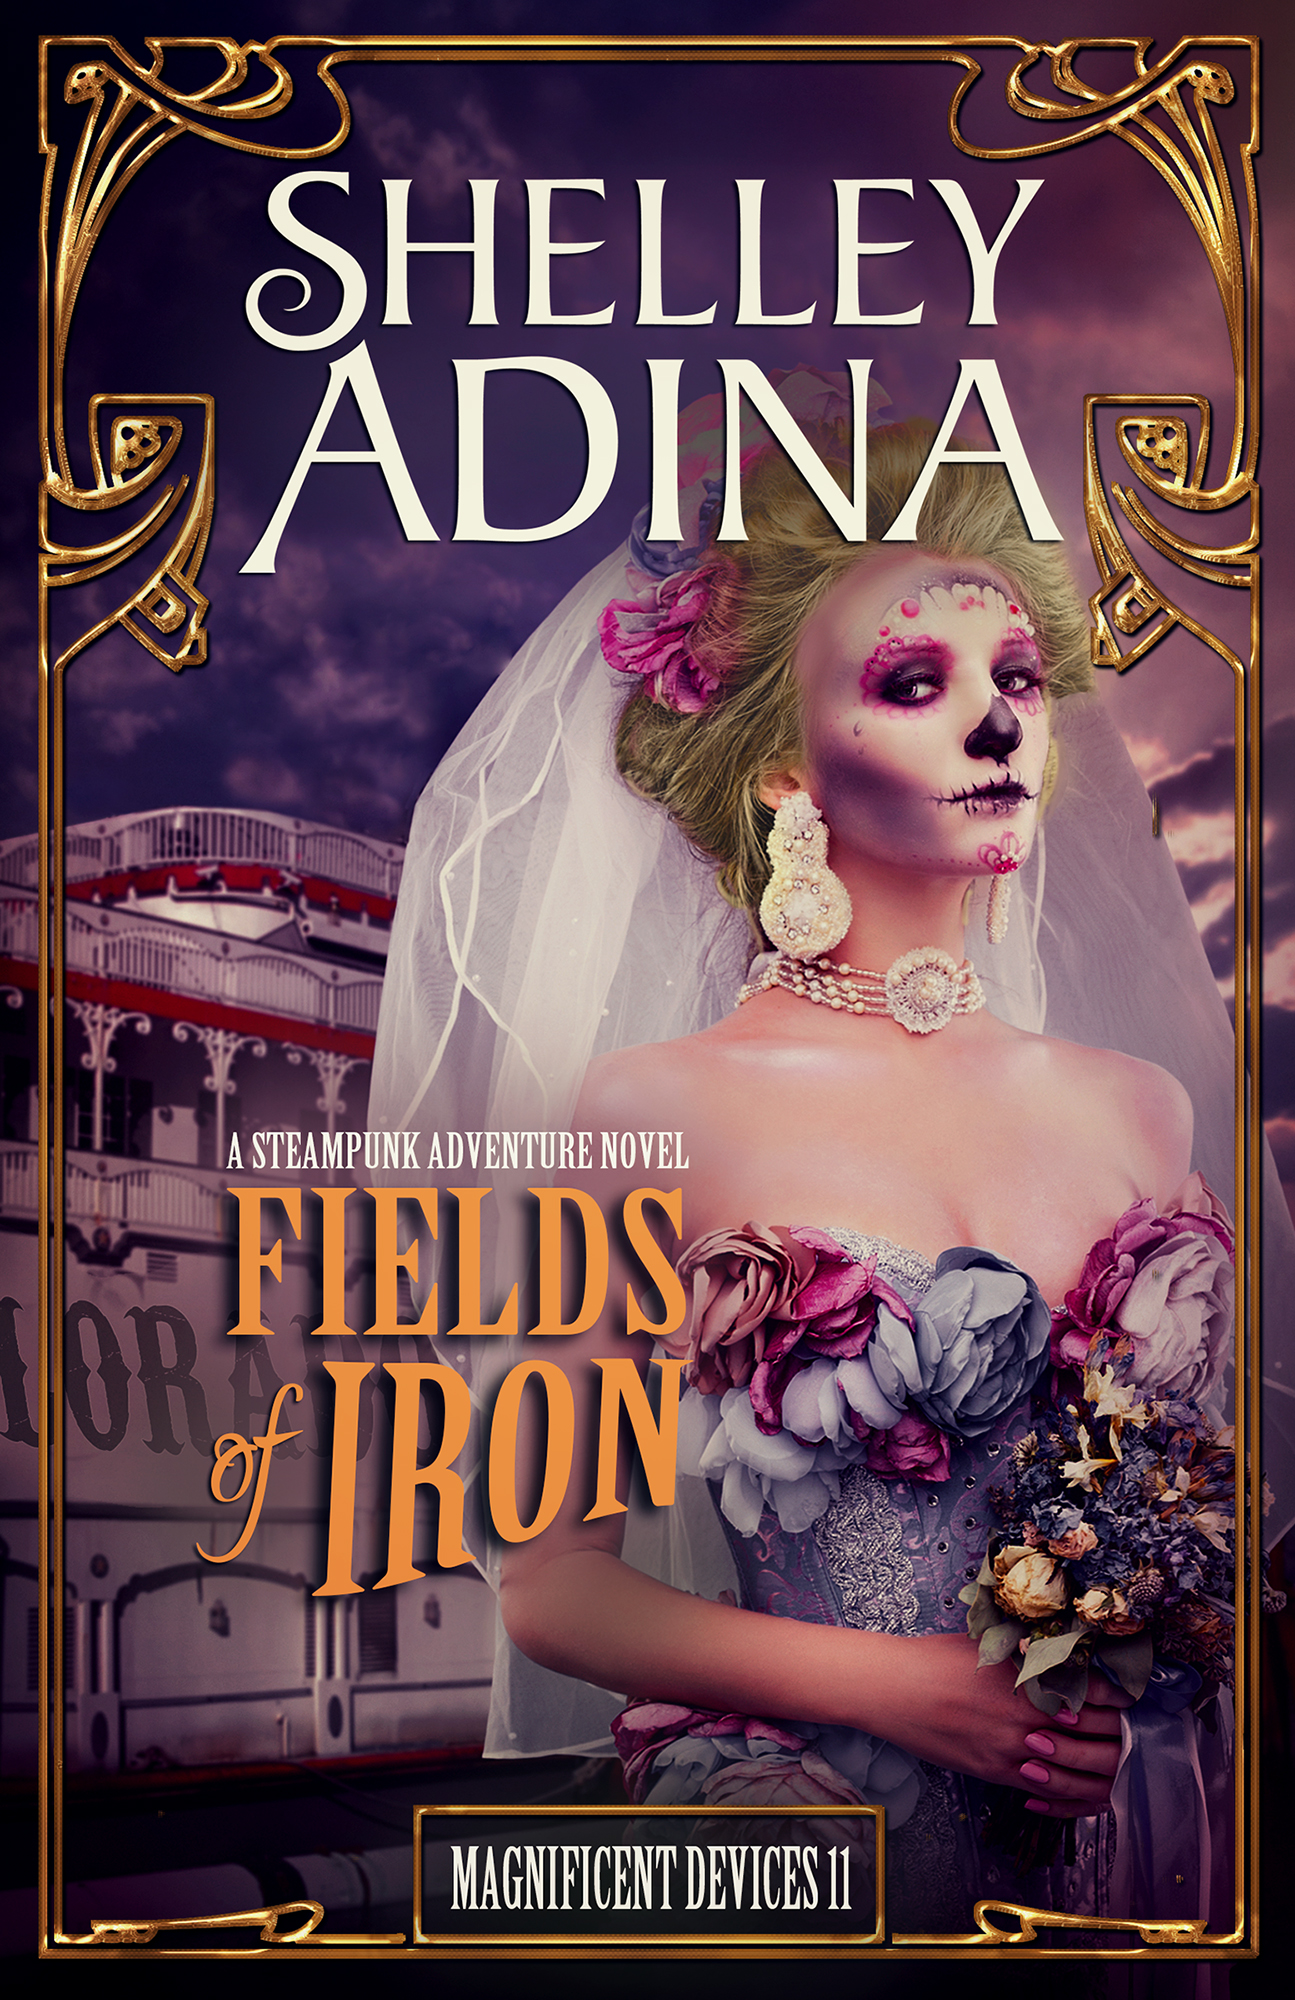 Fields of Iron, Magnificent Devices Book 11, Shelley Adina, steampunk